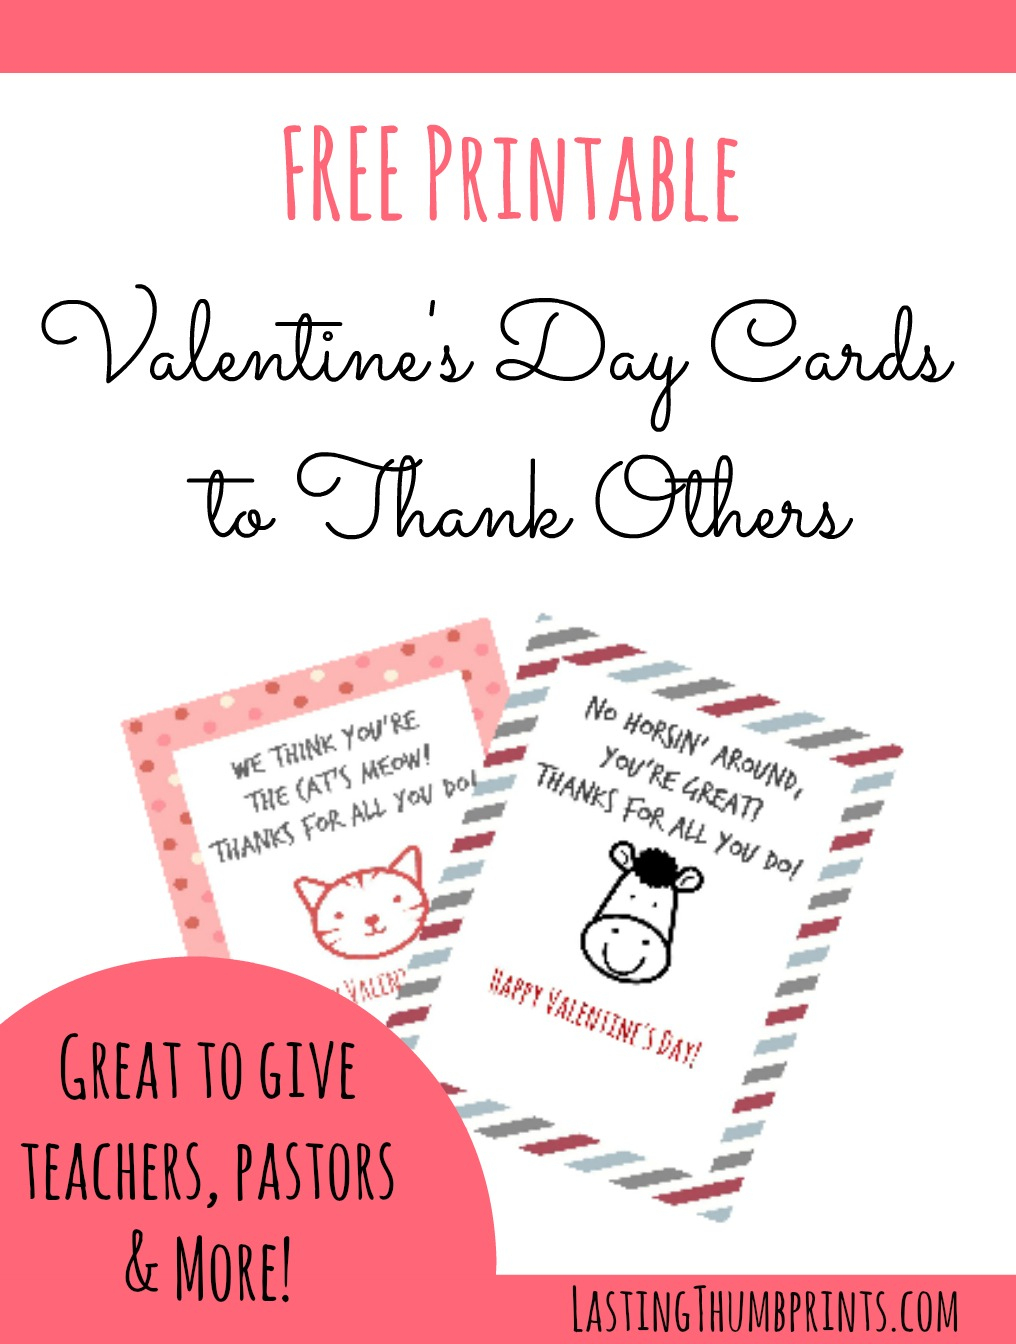 Free Valentine's Day Cards To Thank Others - Free Printable Thank You Cards For Teachers